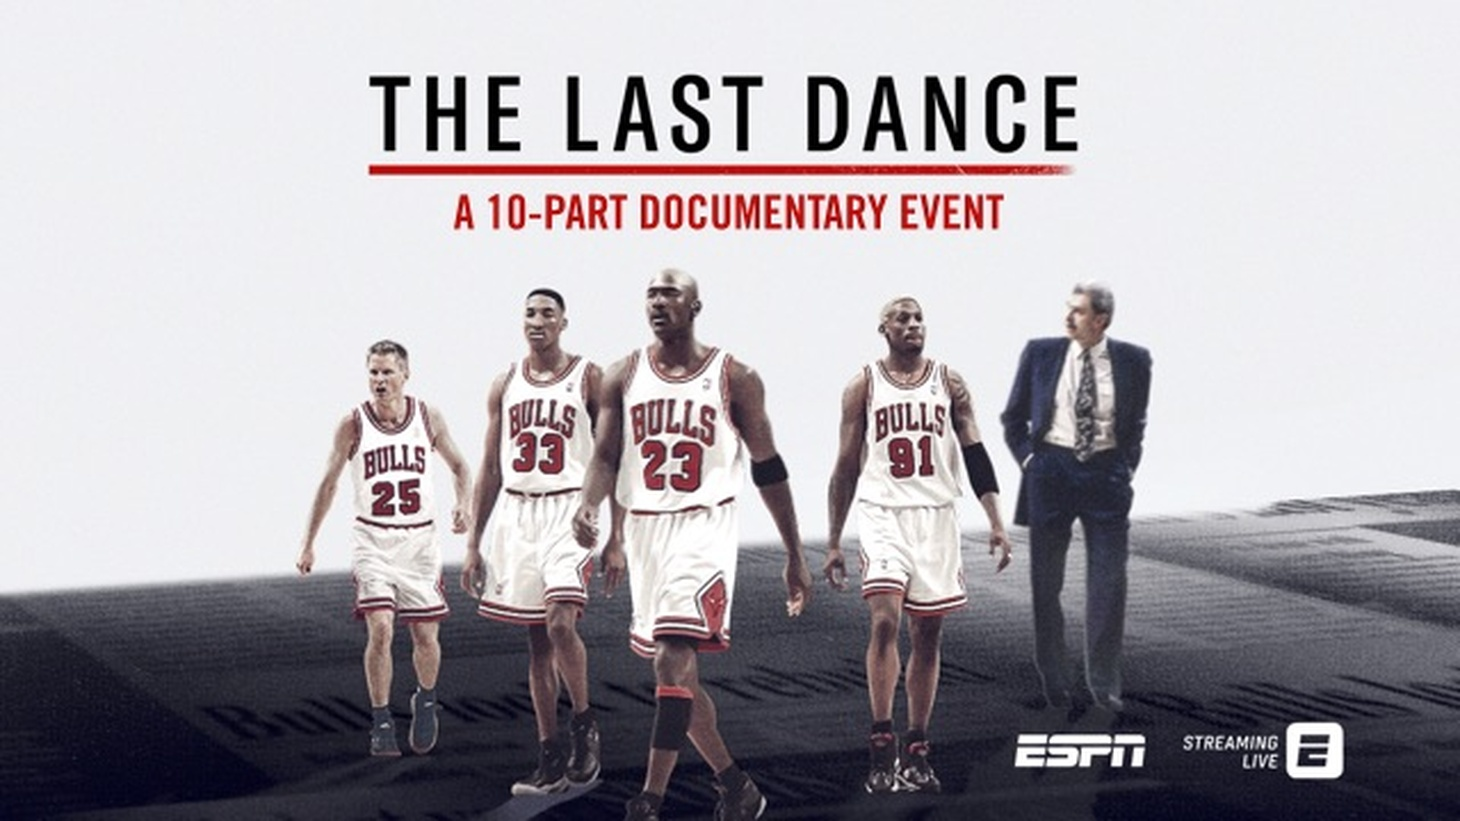 """The Last Dance"" follows the Chicago Bulls as they seek their sixth NBA championship in eight years."